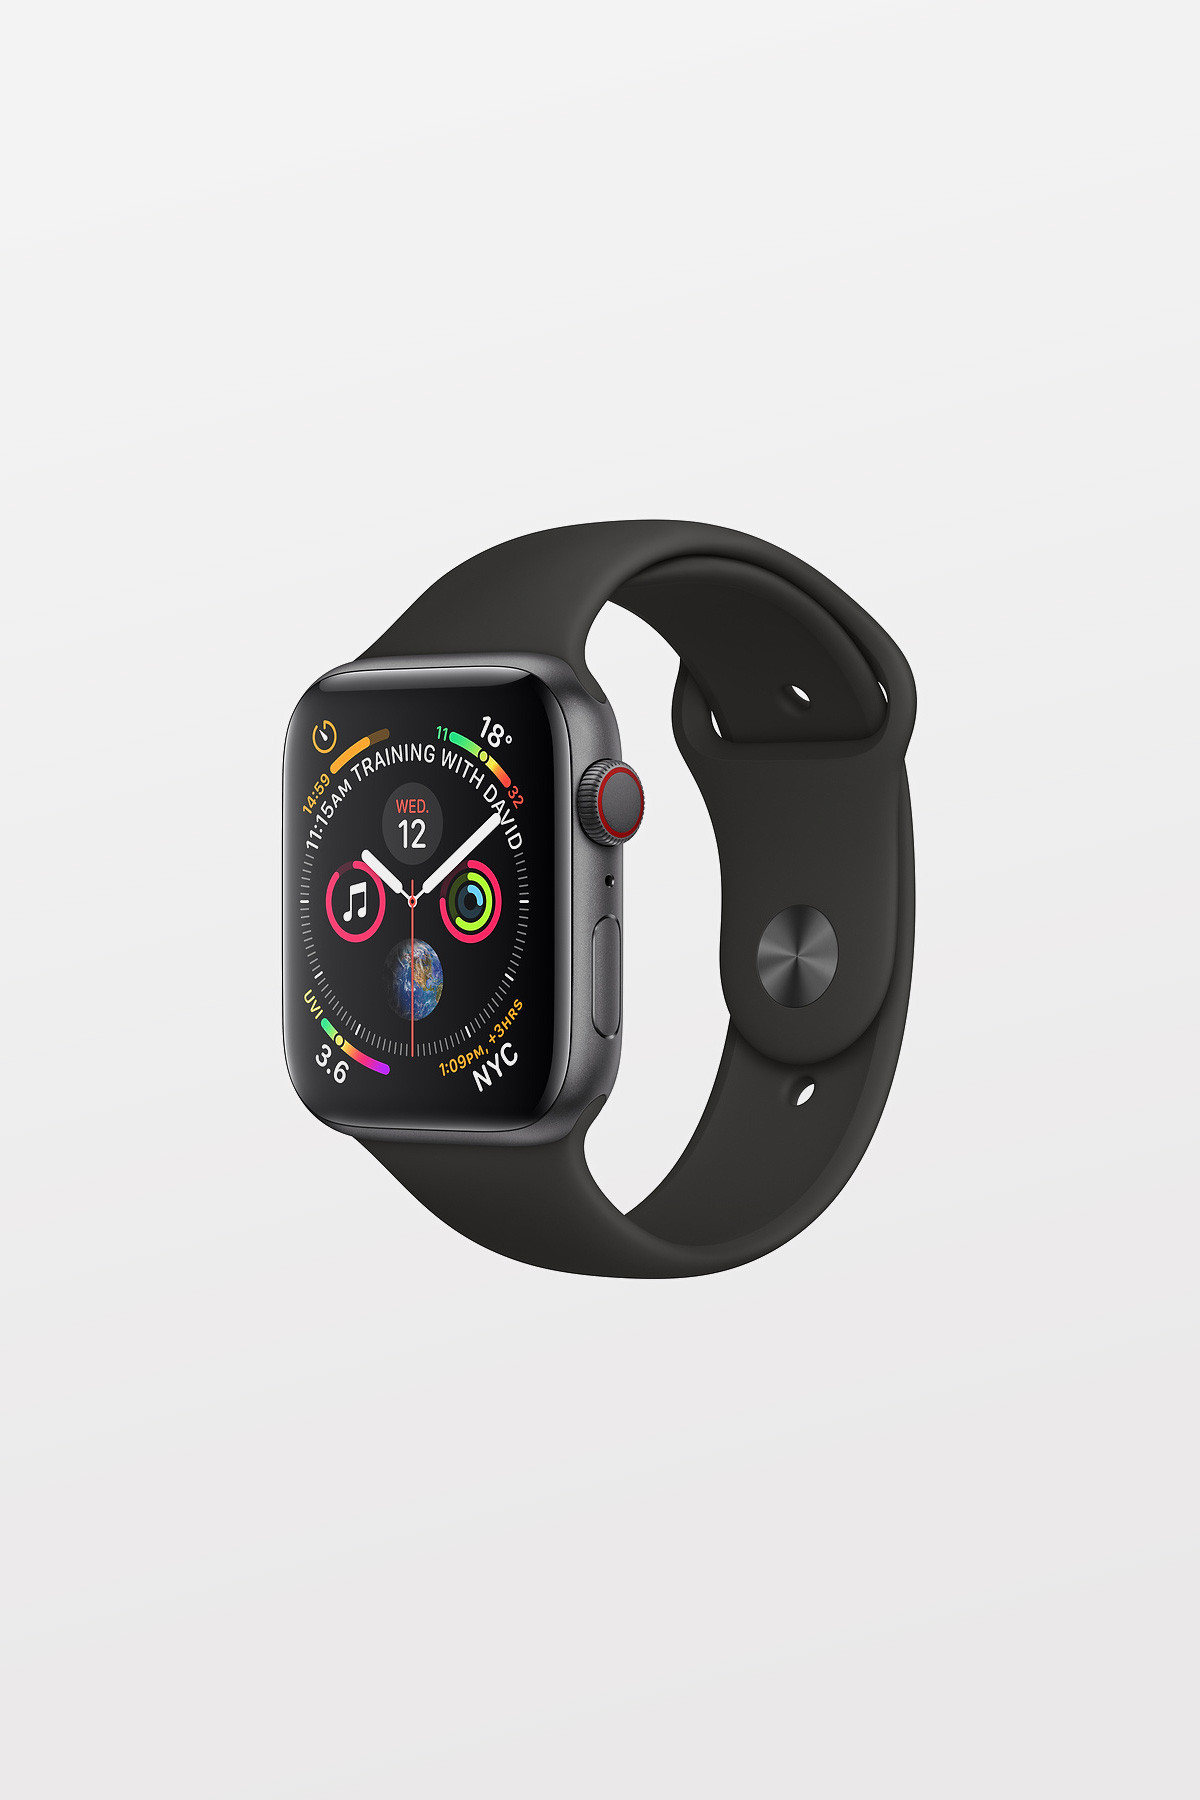 Apple Watch Series 4 Cellular - 44mm - Space Grey Aluminium Case with Black Sport Band